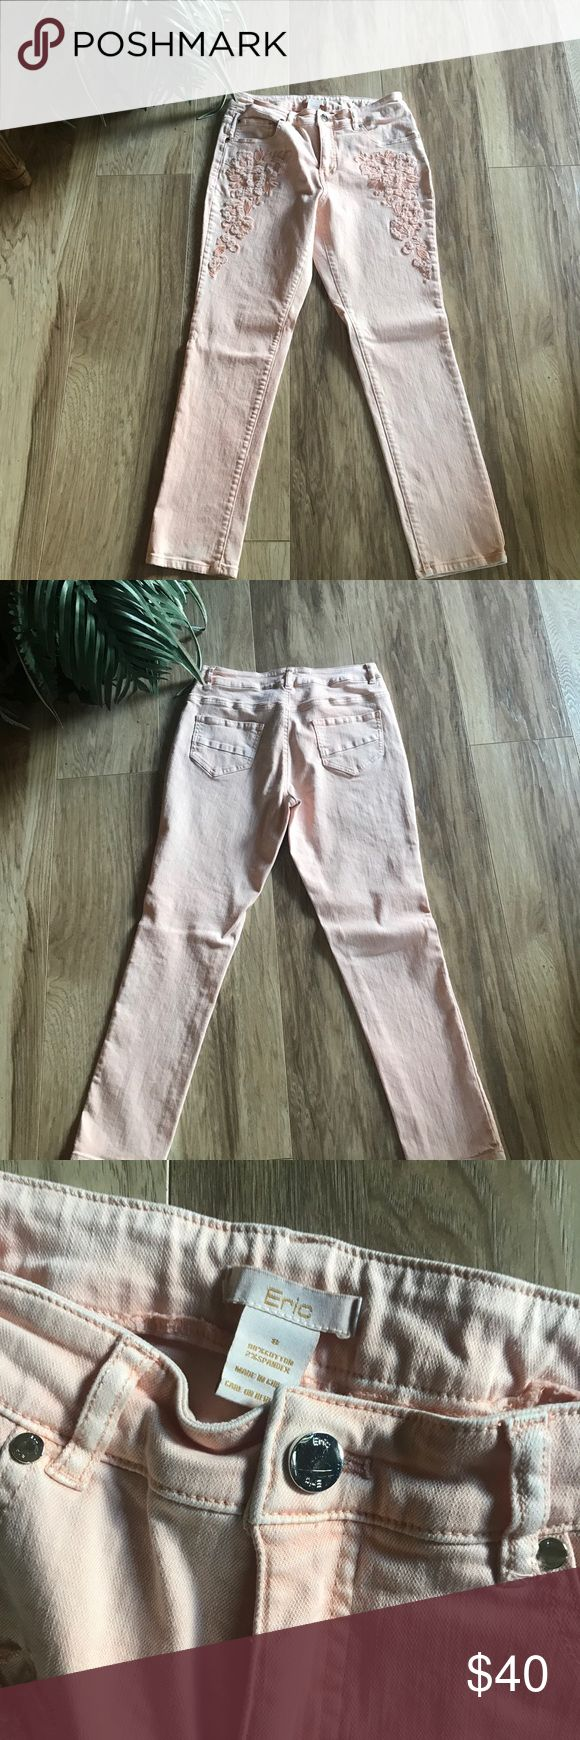 Price drop 😀 Super cute Eric jeans.💋 From boutique - Peach, skinny jeans with flower embroidery on both sides! Only worn one time, 26 inch inseam.🌹 Eric Jeans Skinny